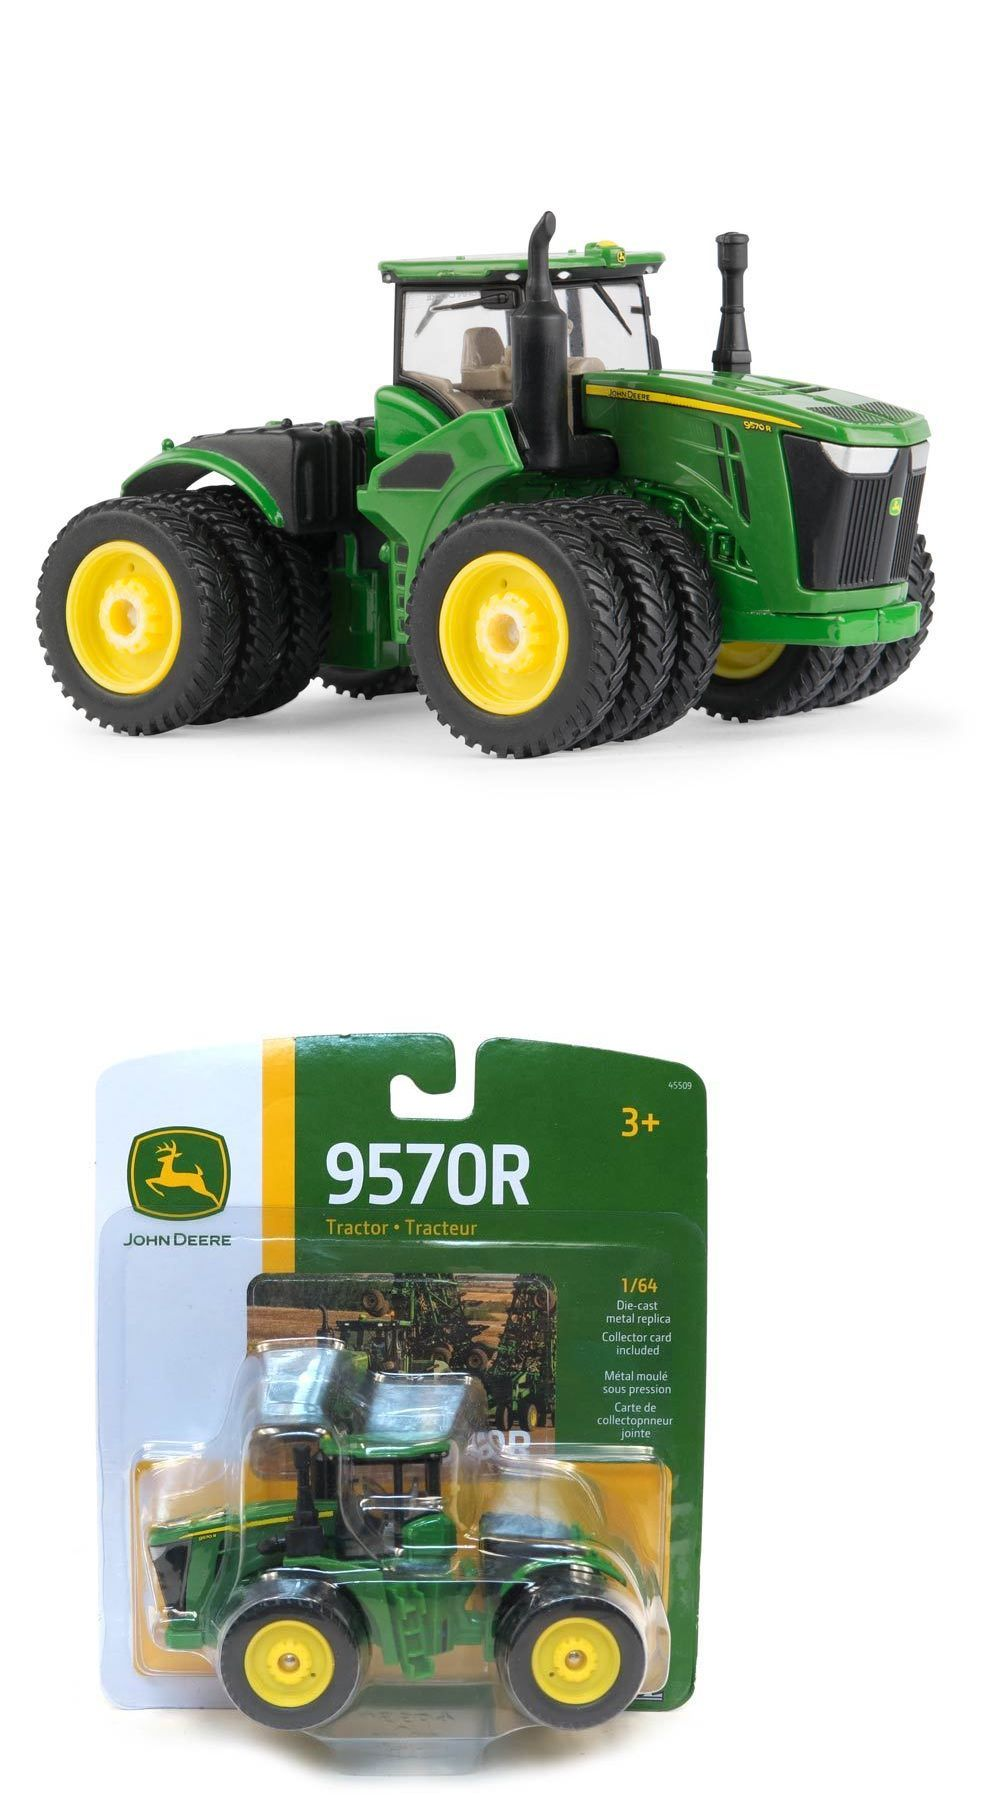 Contemporary Manufacture 156623: 1 64 Ertl John Deere 9570R 4Wd Tractor W  Triples -> BUY IT NOW ONLY: $15.99 on eBay!